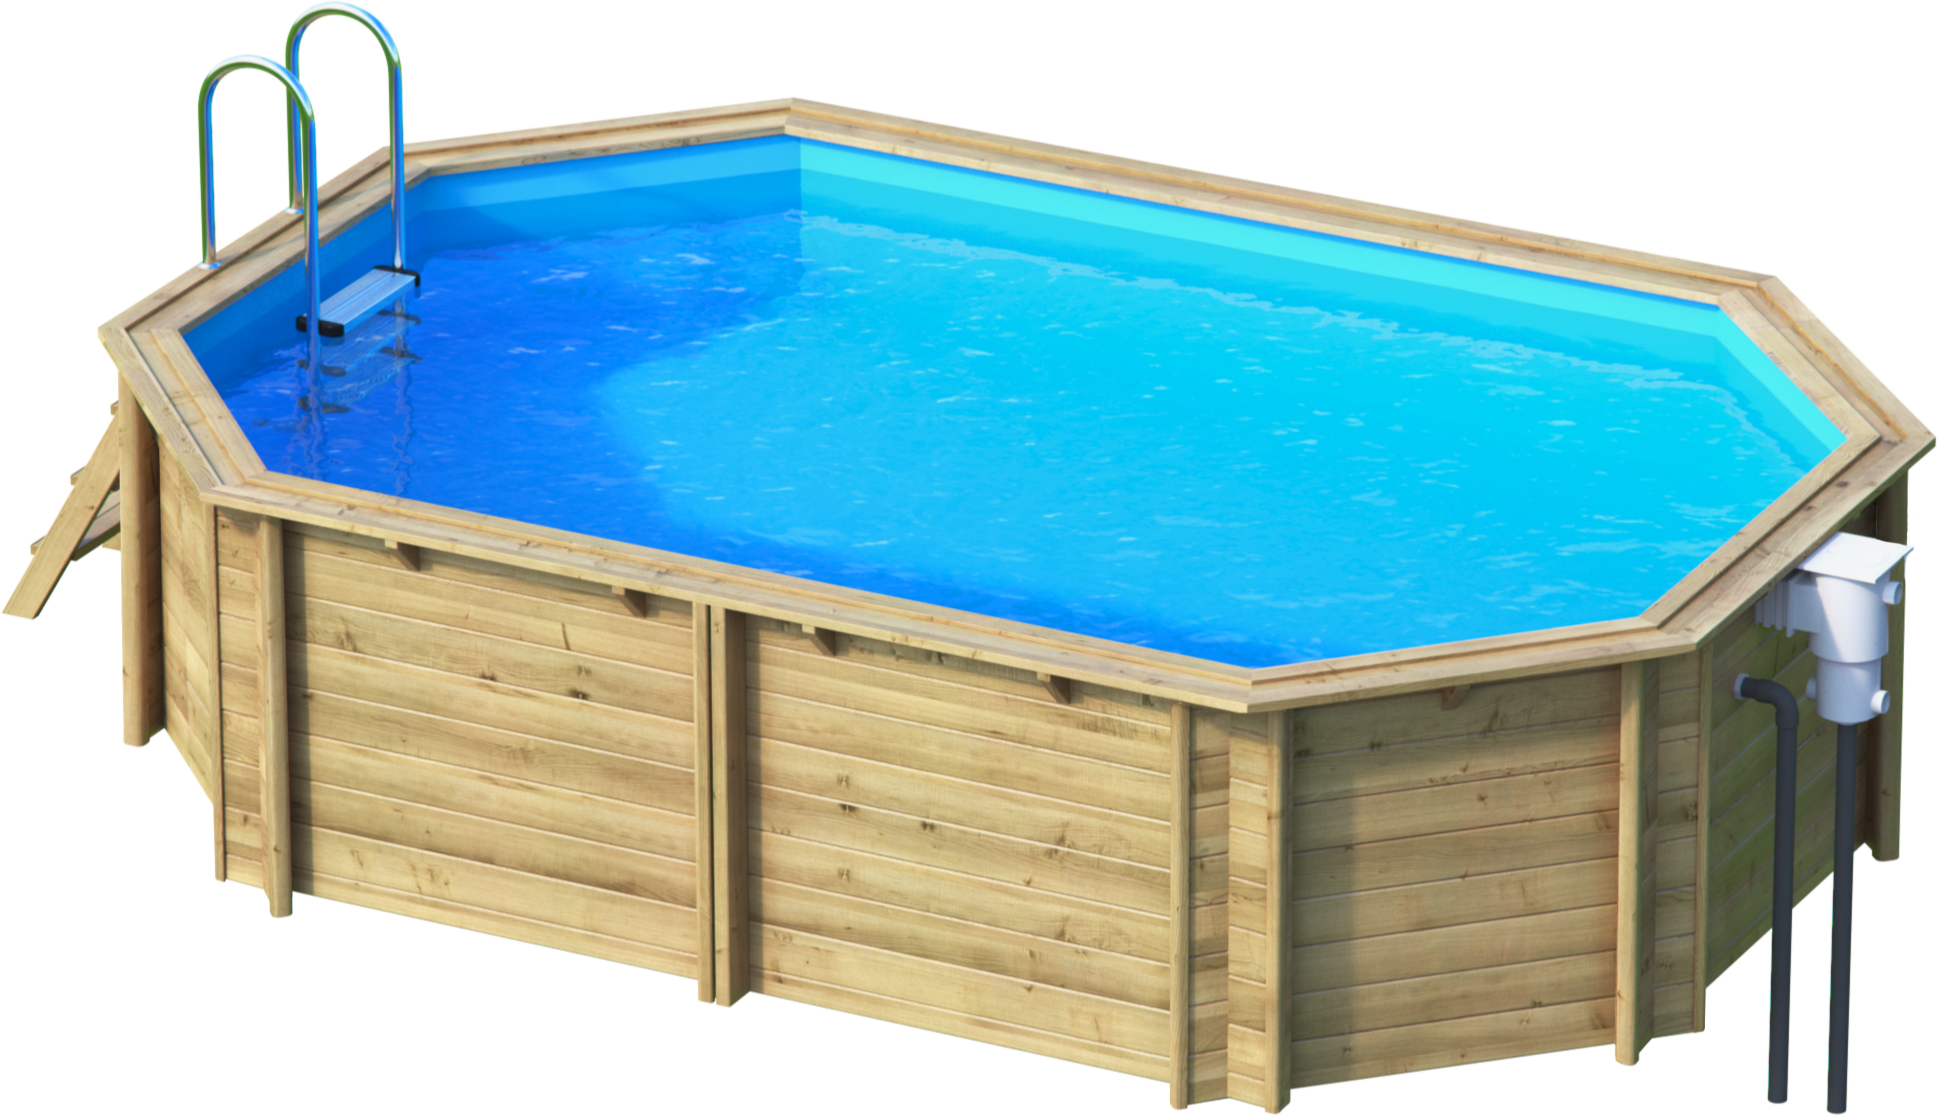 Tropic octo 450 piscine bois tropic chez lpc for Piscine bois octogonale